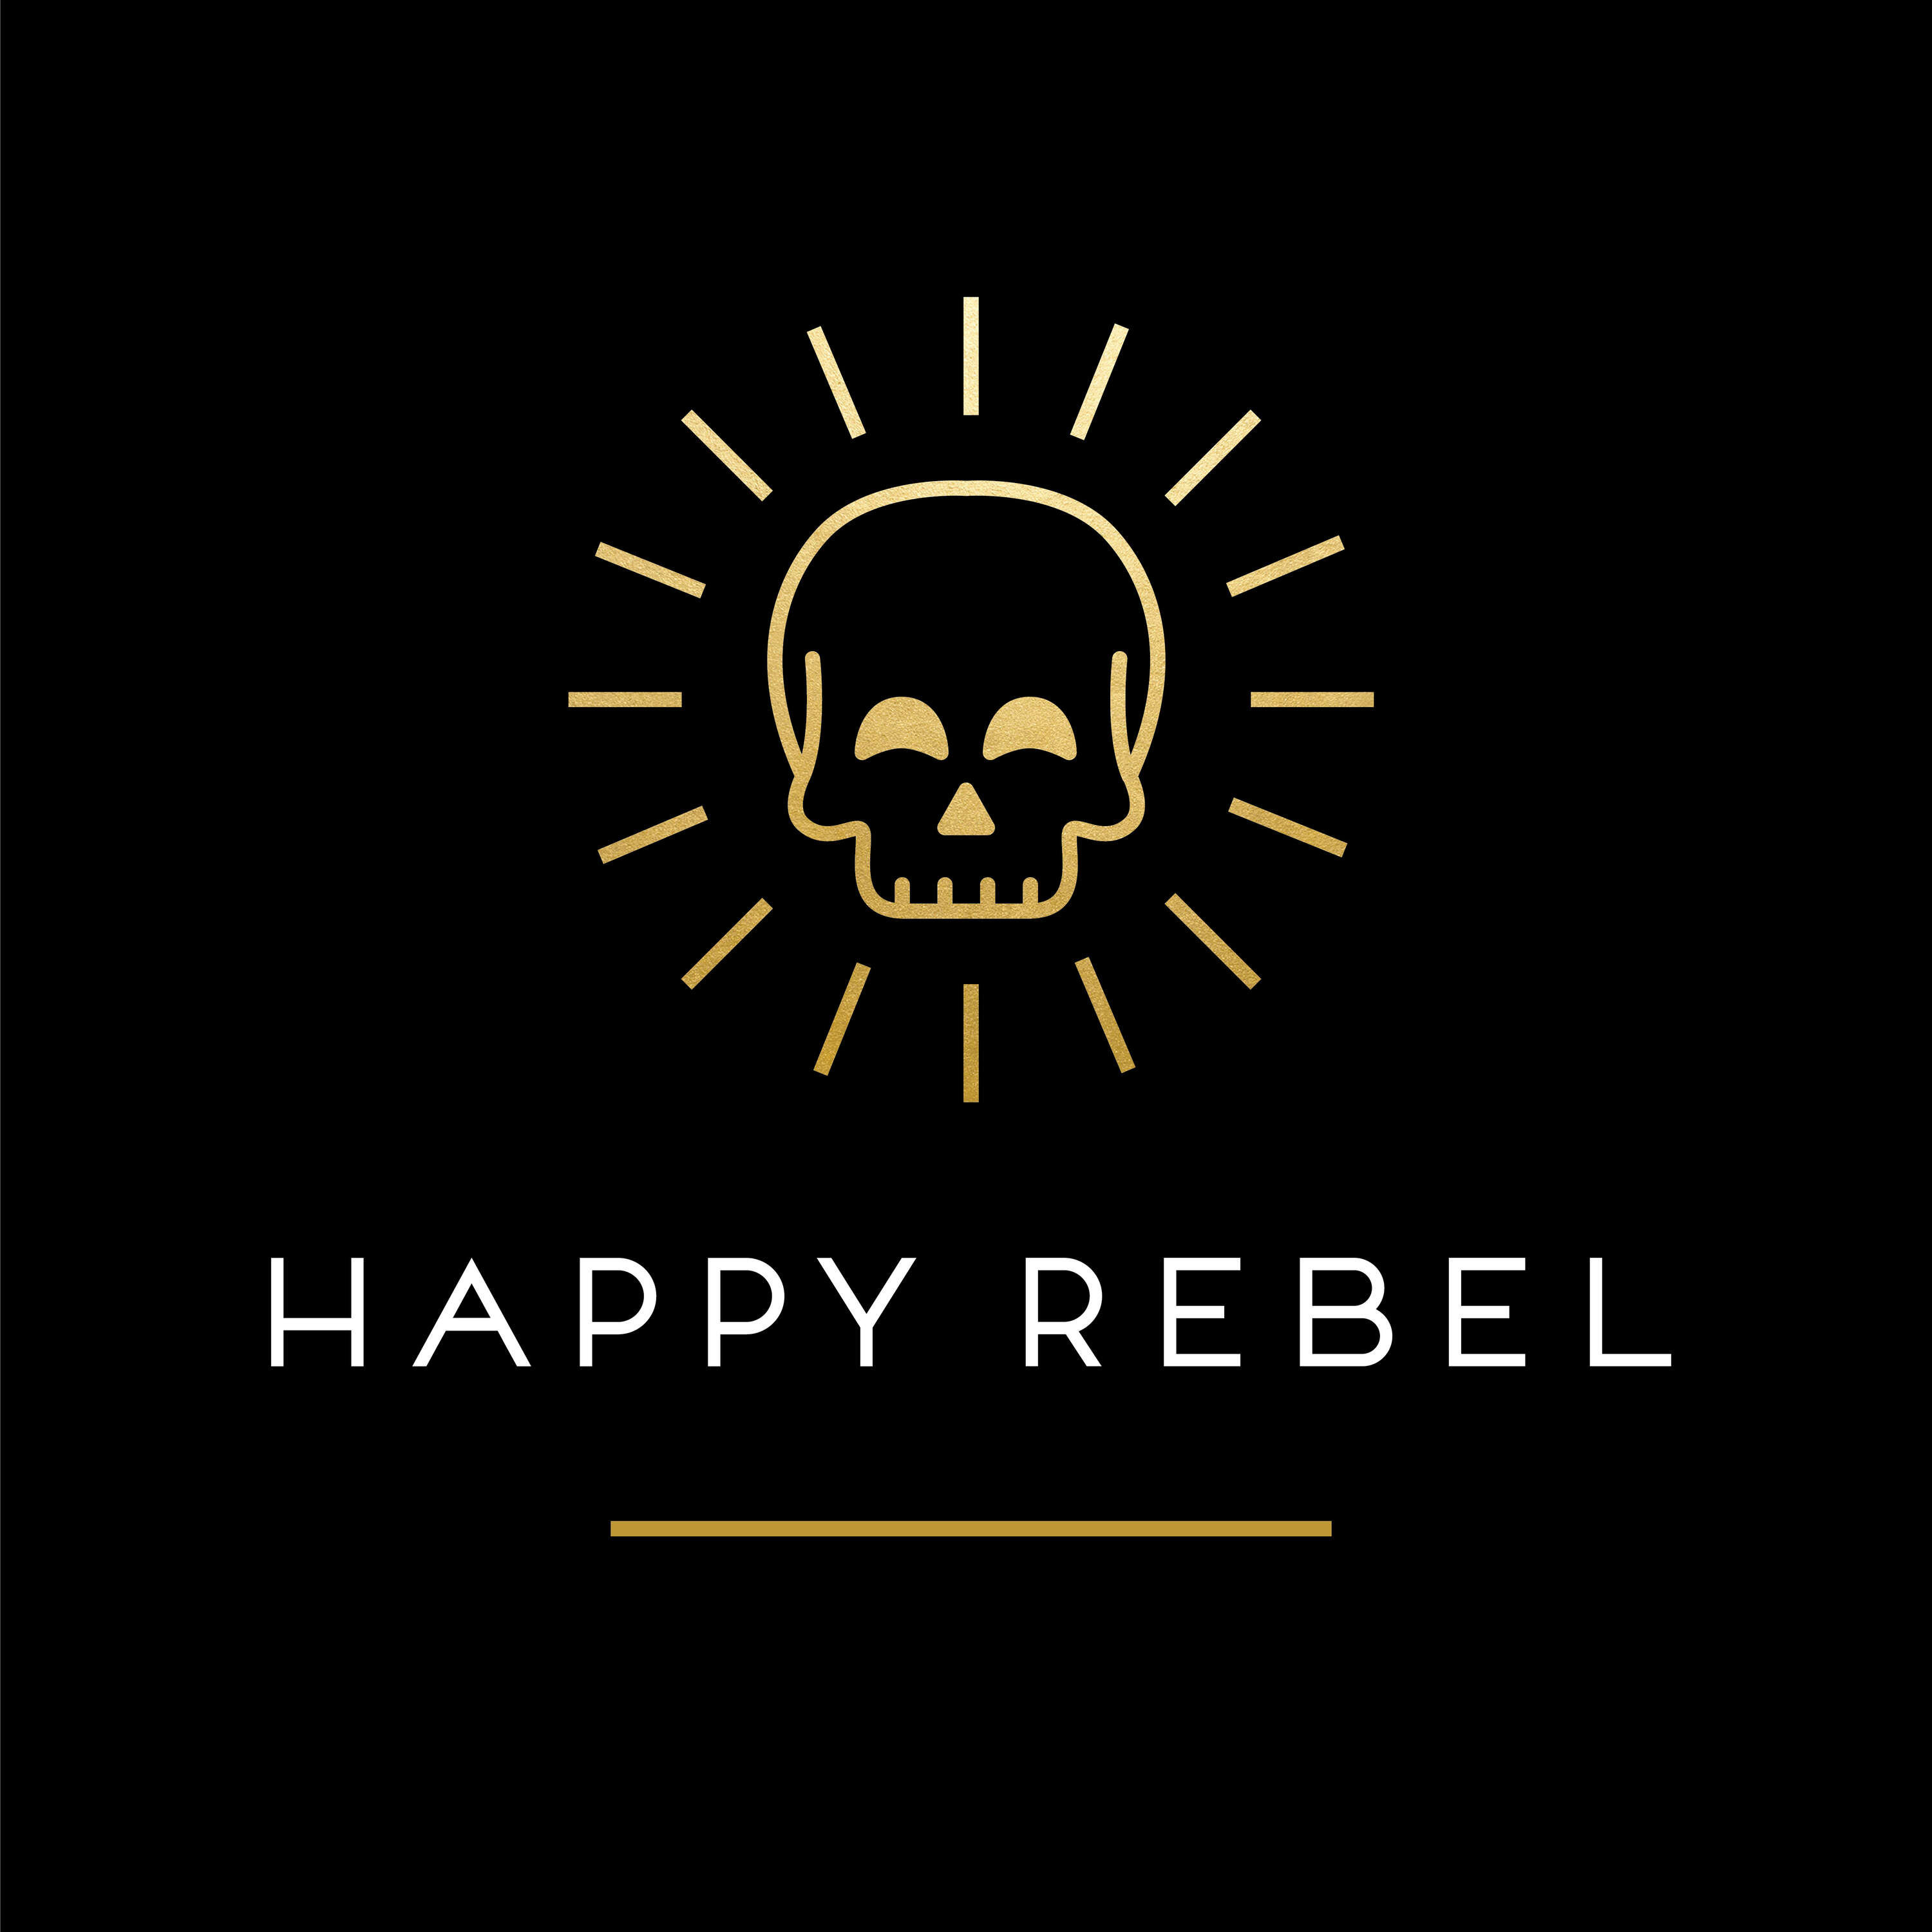 Introducing the Happy Rebel Podcast!